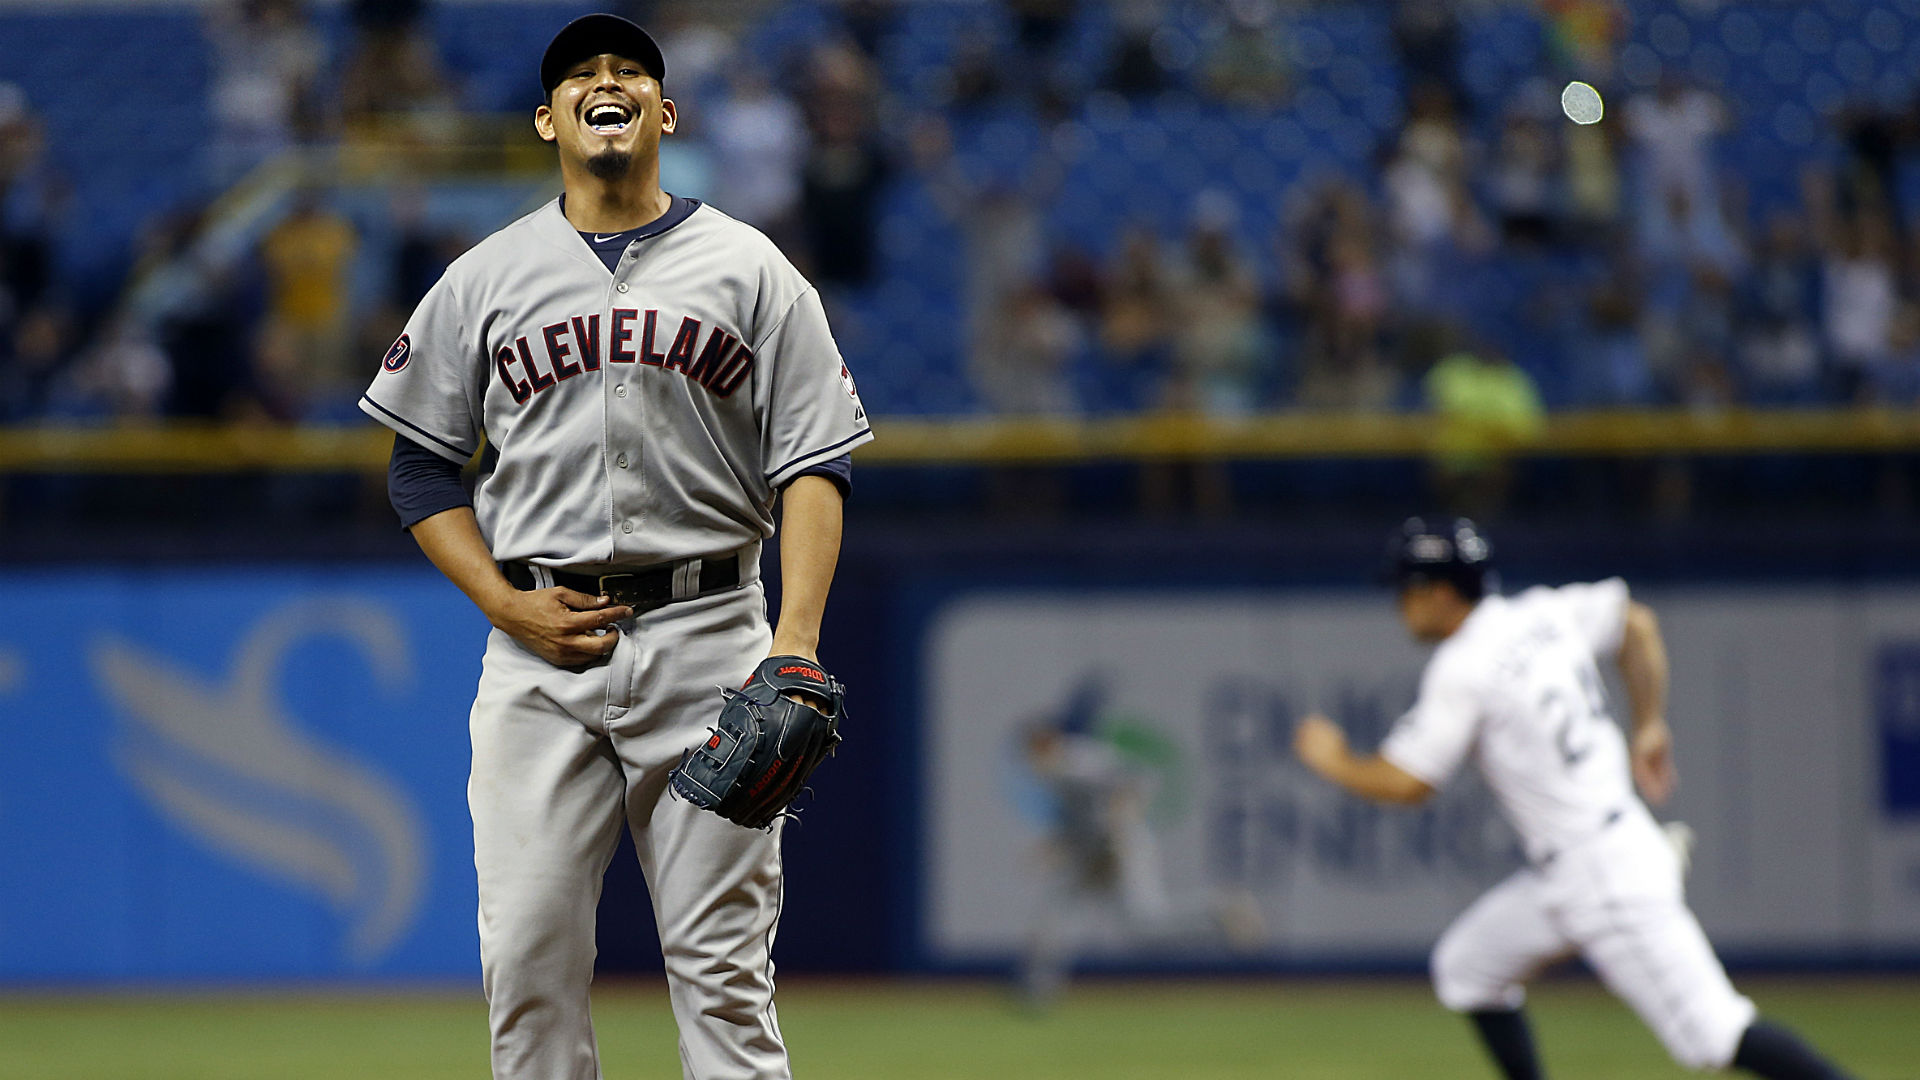 MLB Nightly 9: Carlos Carrasco comes one strike away from no-hitter